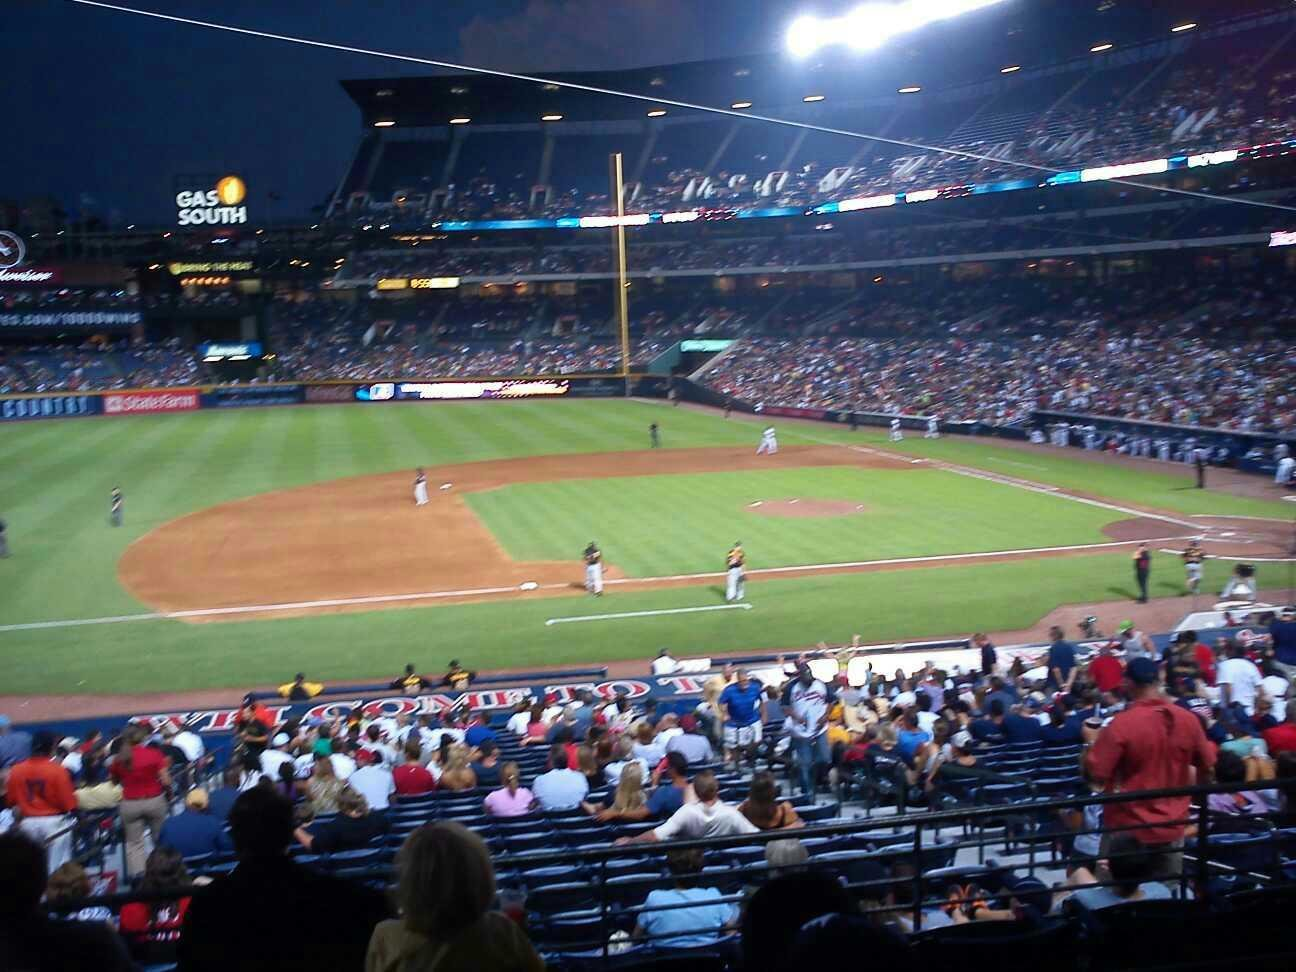 Turner Field Section 216 Row 3 Seat 3